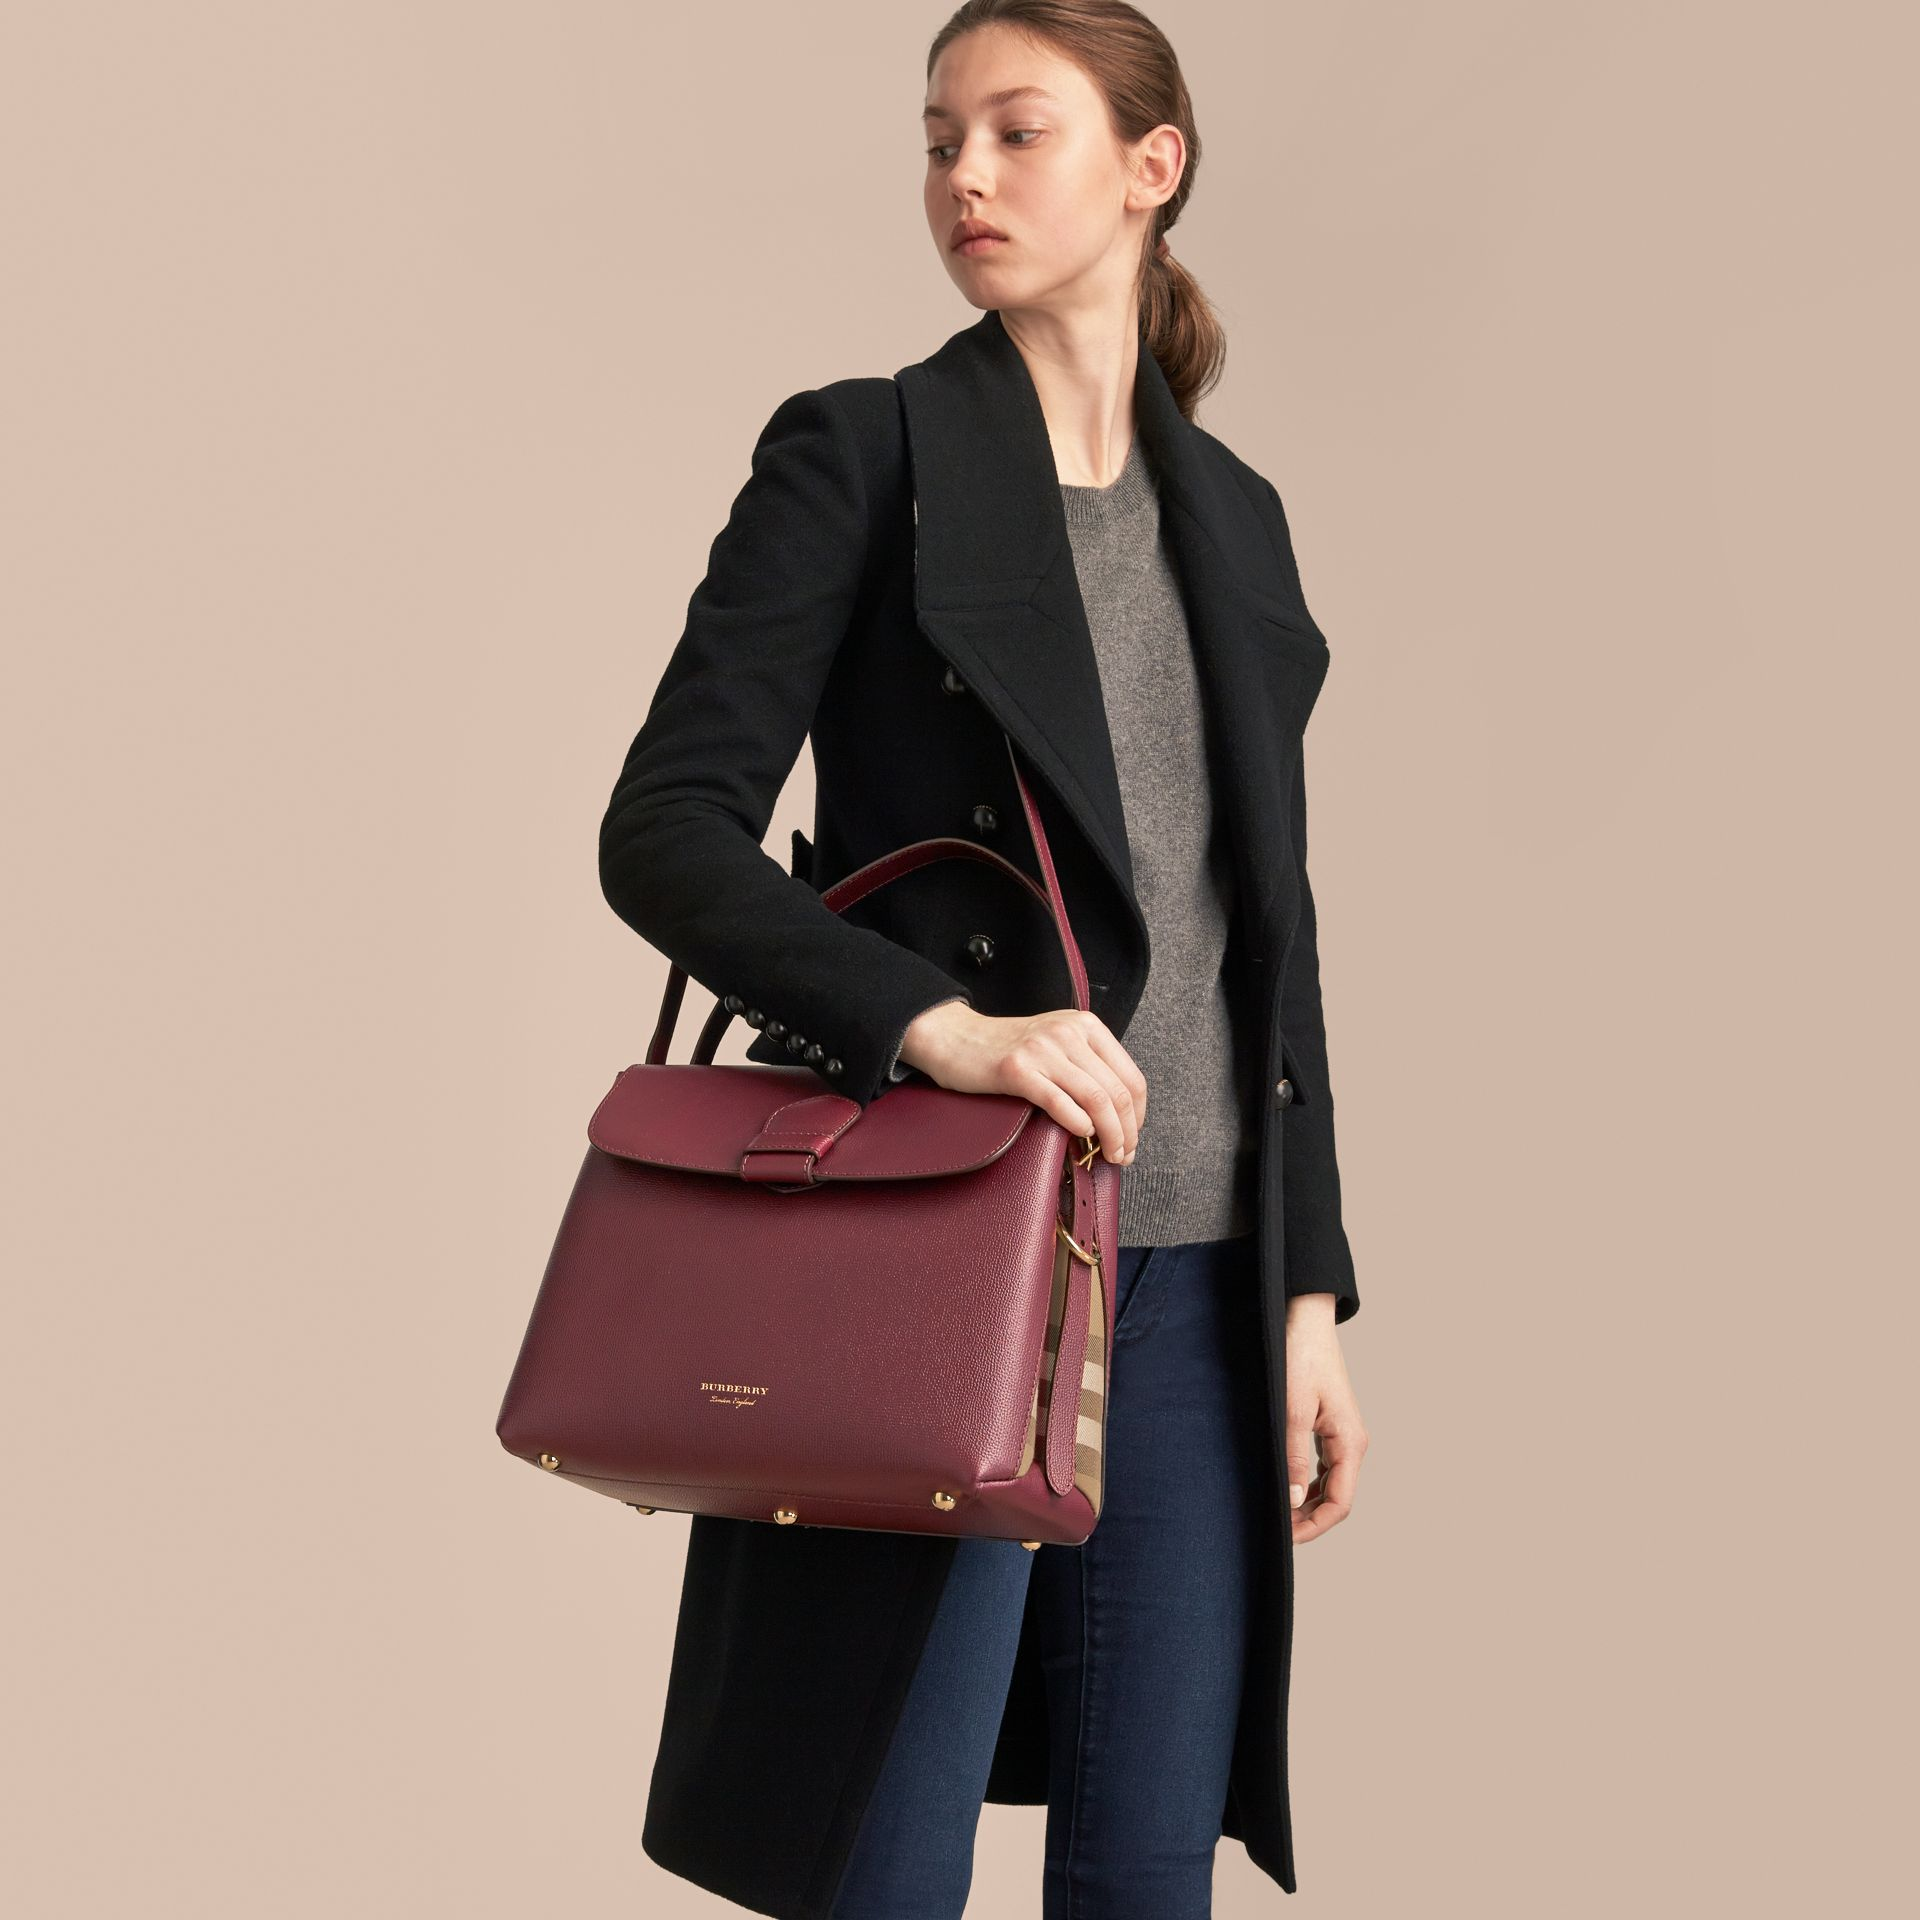 Medium Grainy Leather and House Check Tote Bag in Mahogany Red - Women | Burberry United Kingdom - gallery image 2